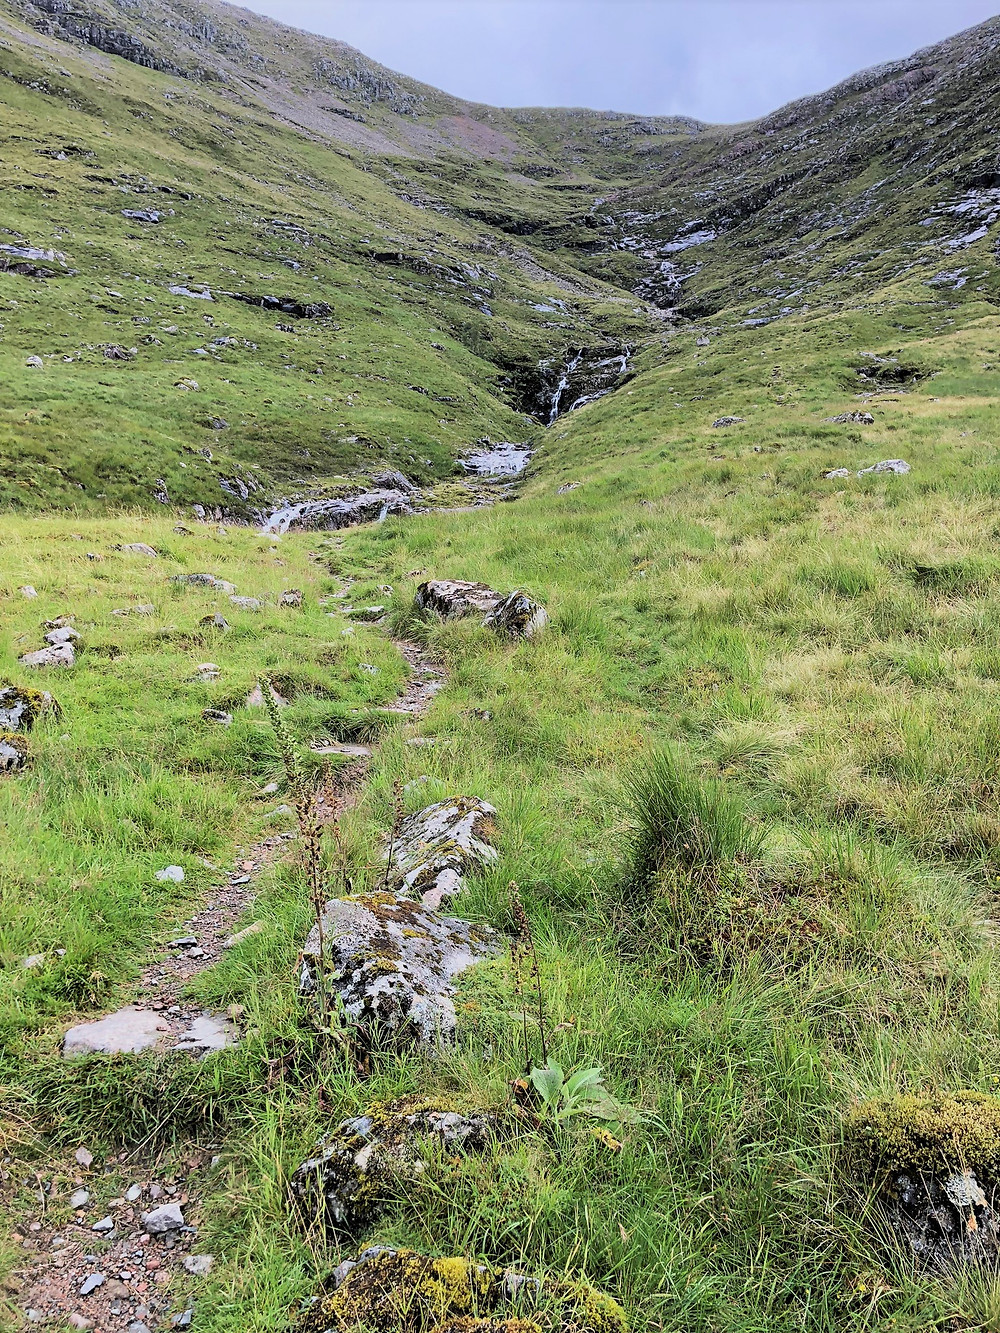 Following the path to the Larig Gartain along the banks of the Allt Coire Altruim